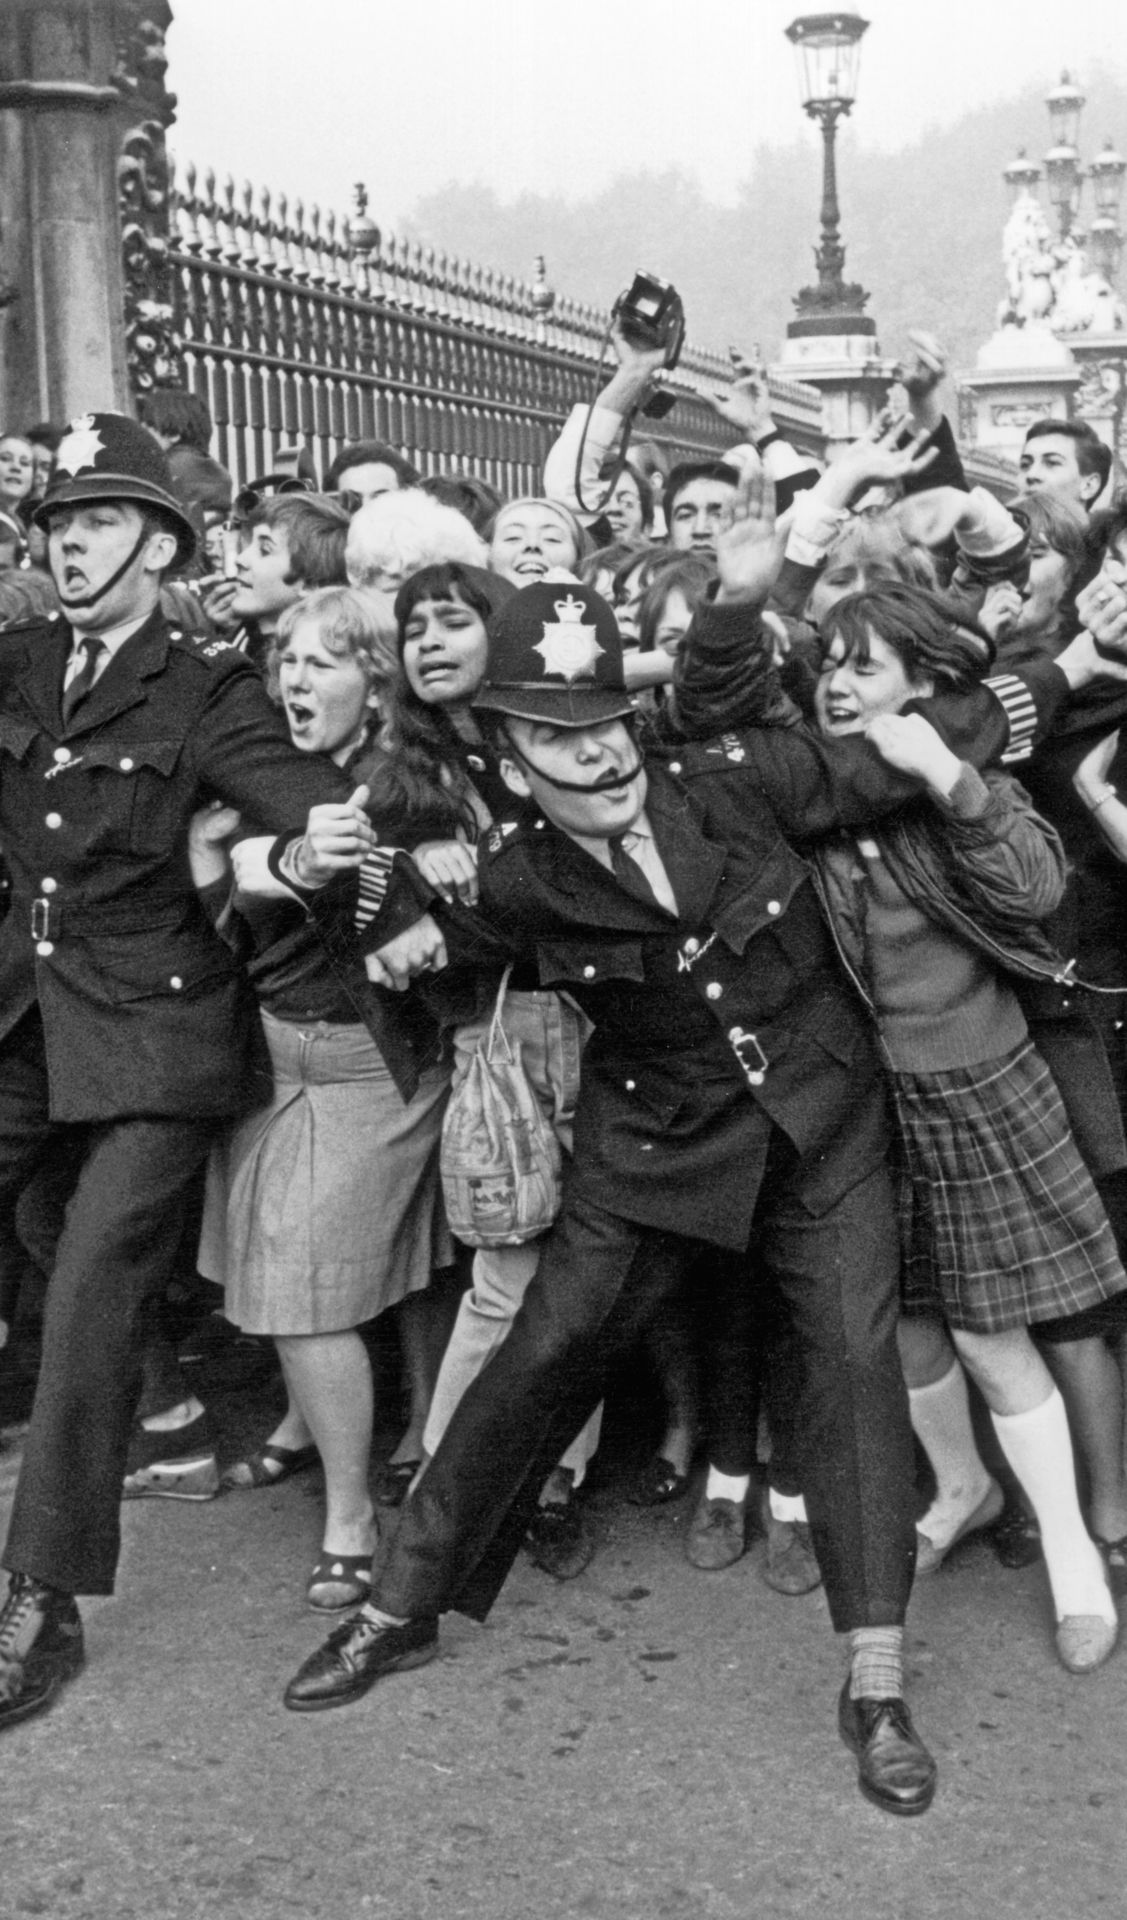 a look into beatlemania in the 1960s Blacks were enslaved well into the 1960s more than 100 years after the emancipation proclamation, there were black people in the deep south who had no idea they were free these people were forced.